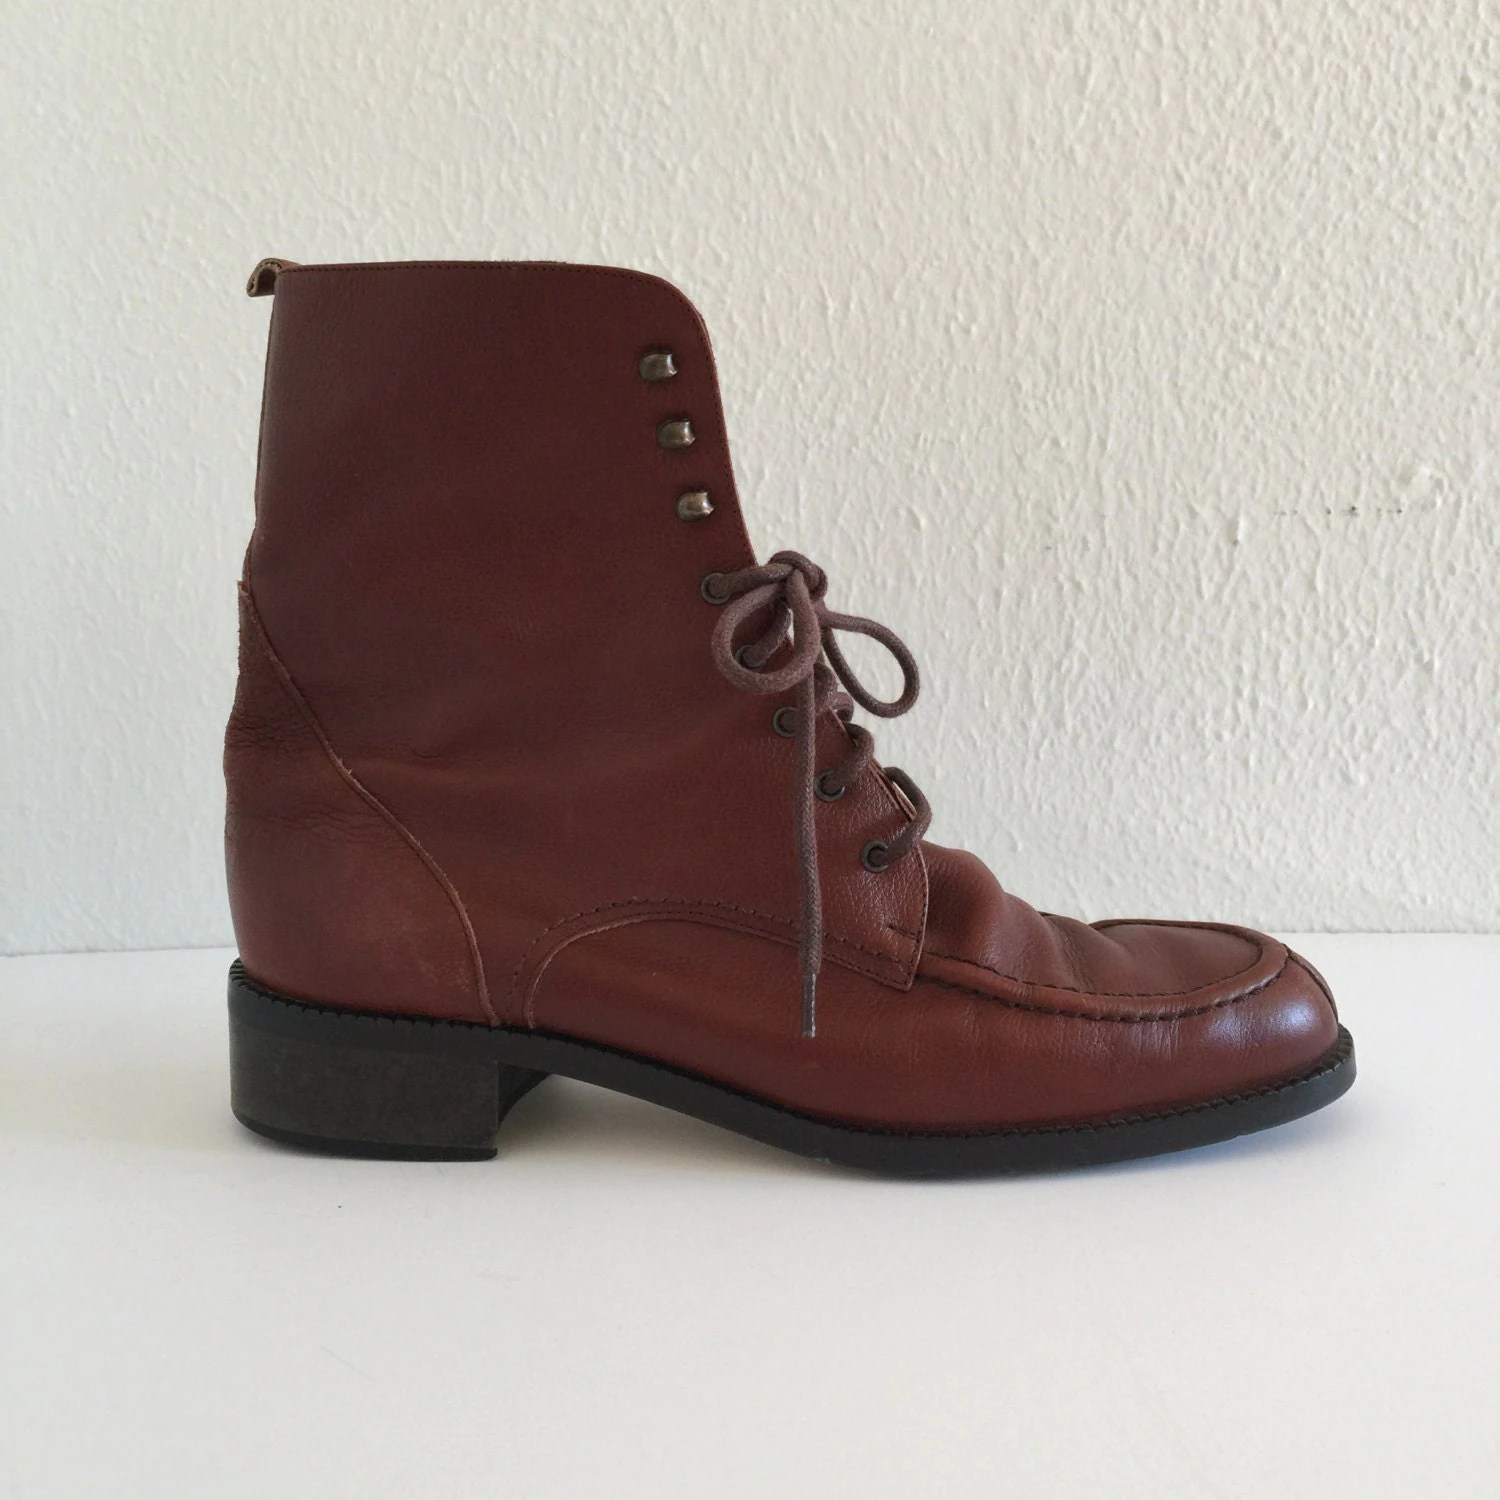 Vintage Eddie Bauer Boots 1990s Women Shoes Casual Brown